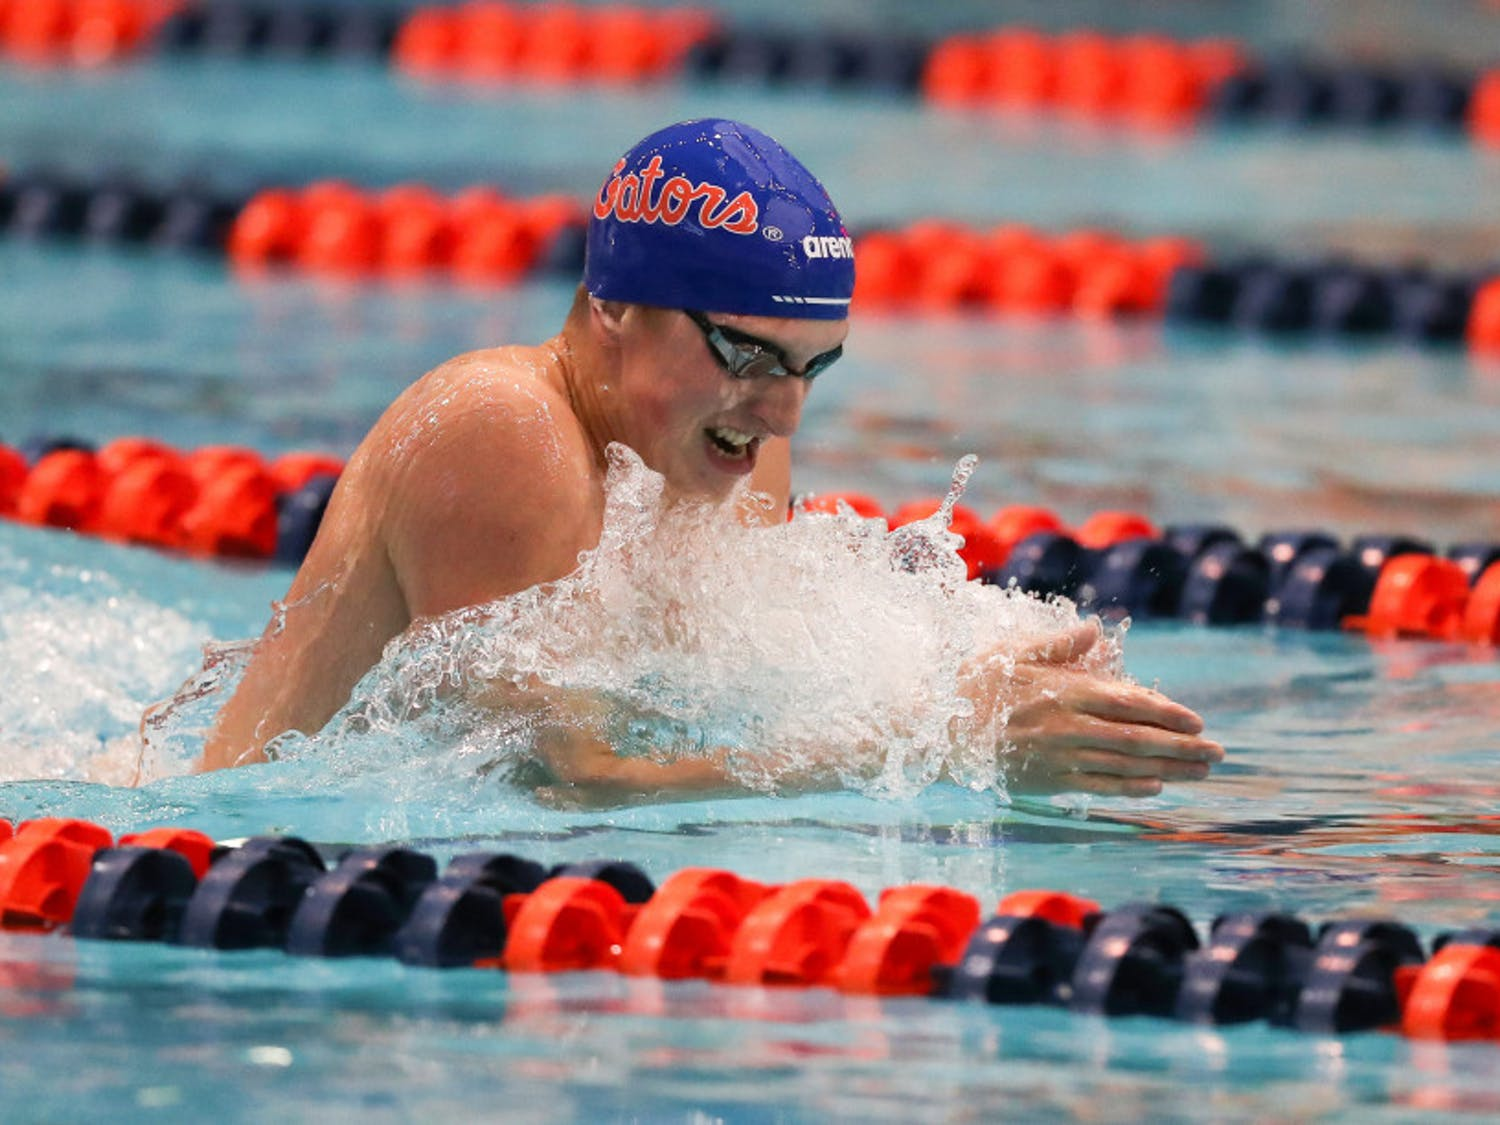 Gators swimmer Kieran Smith comes up to breathe while swimming breaststroke. Smith medaled in three events at the 2020 U.S. Open this weekend.